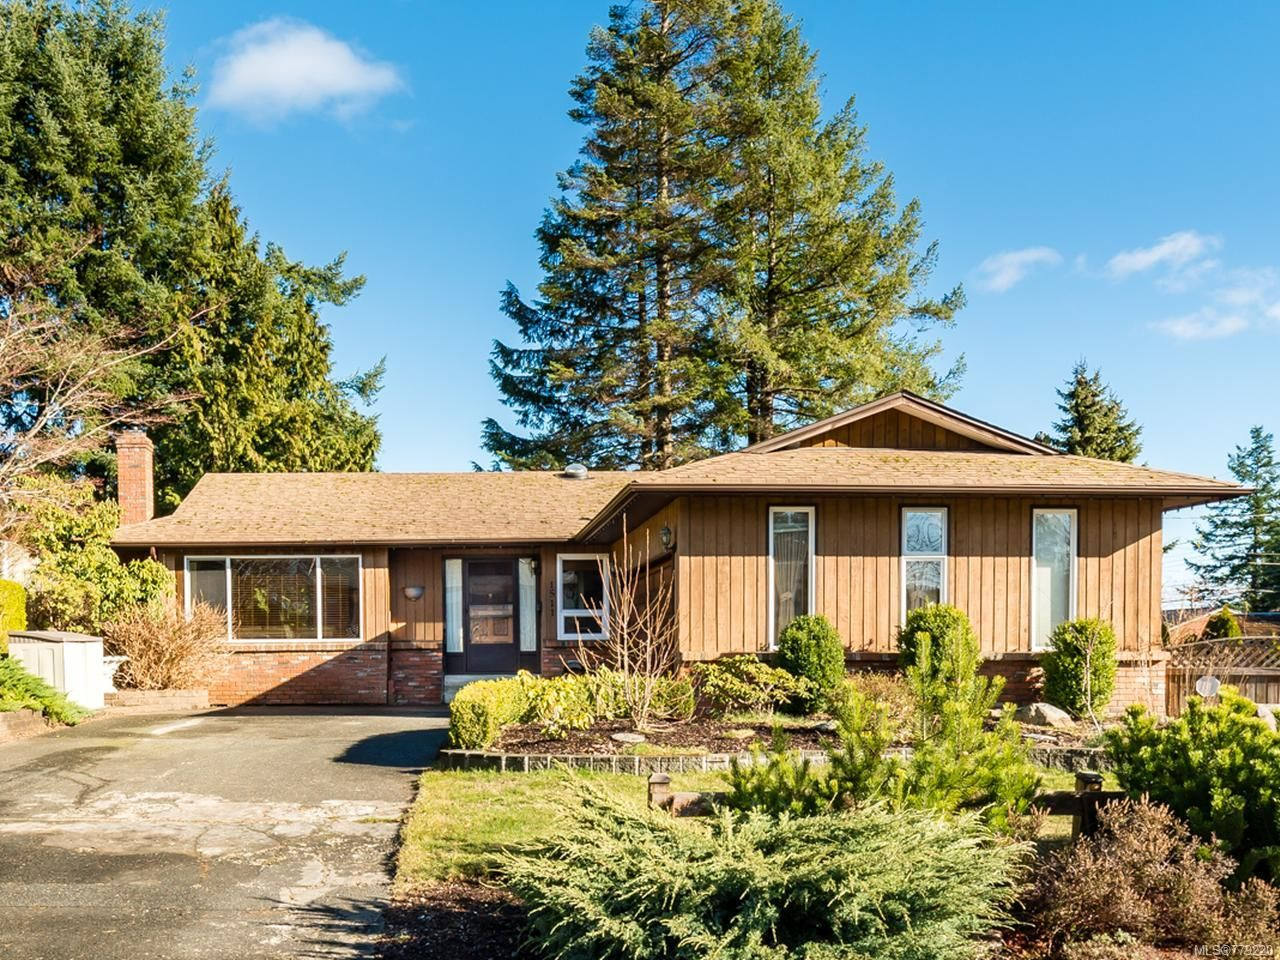 Main Photo: 1511 LEED ROAD in CAMPBELL RIVER: CR Willow Point House for sale (Campbell River)  : MLS®# 779220